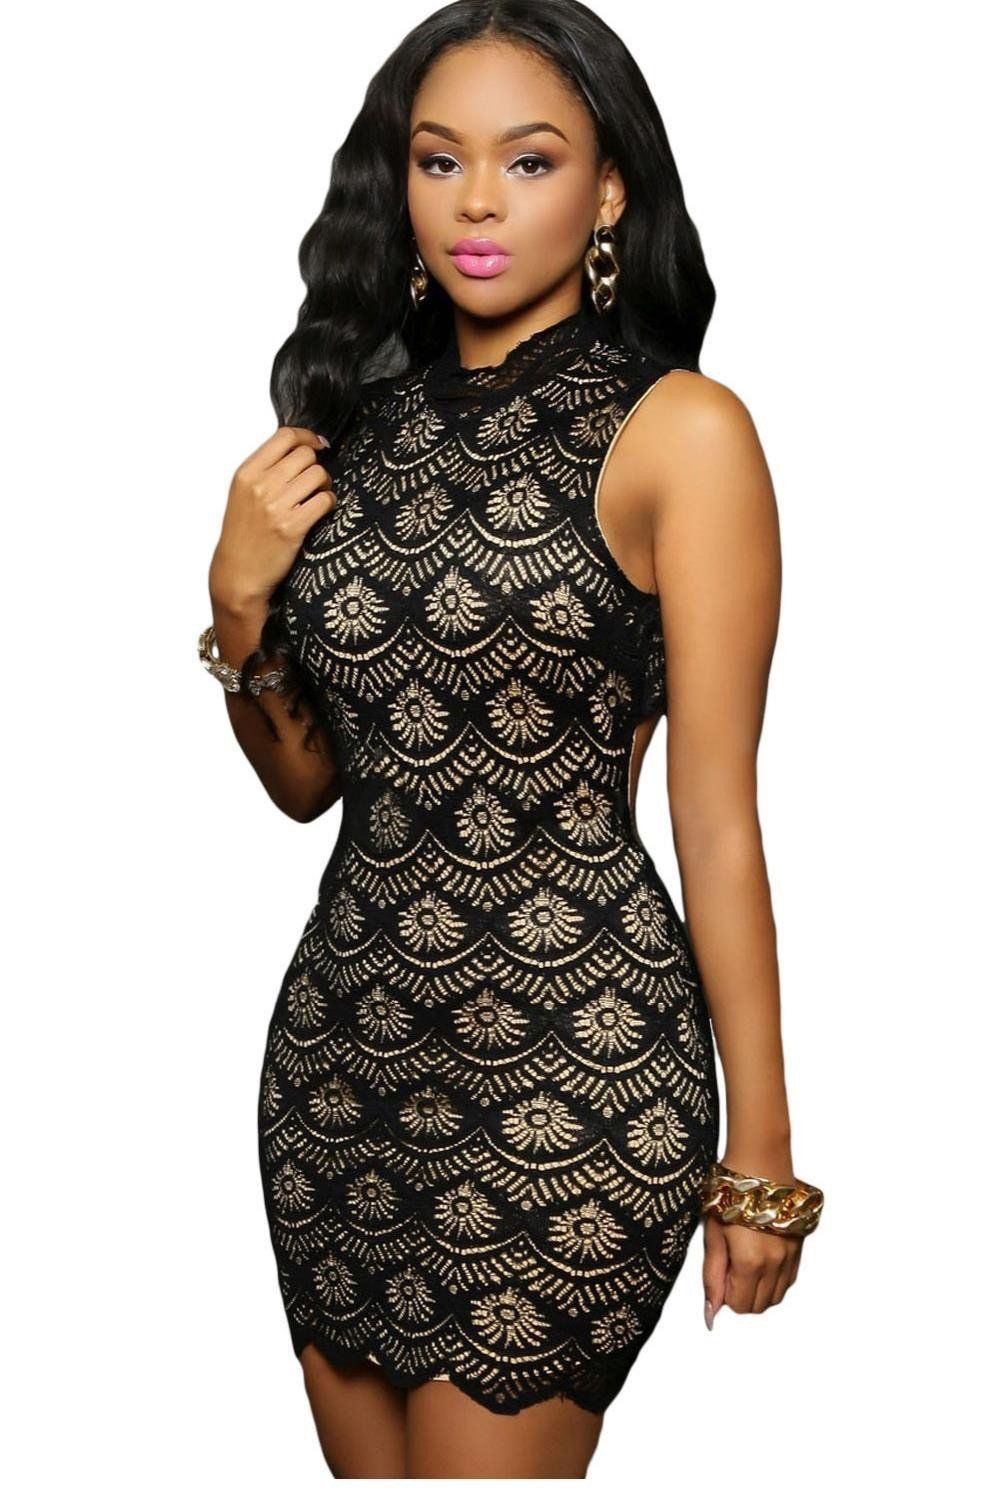 9c4a1e9706612 New Women Bodycon Dress Summer Sexy Black Lace Nude Illusion Keyhole Back  Mini Dress Sexy Club Wear